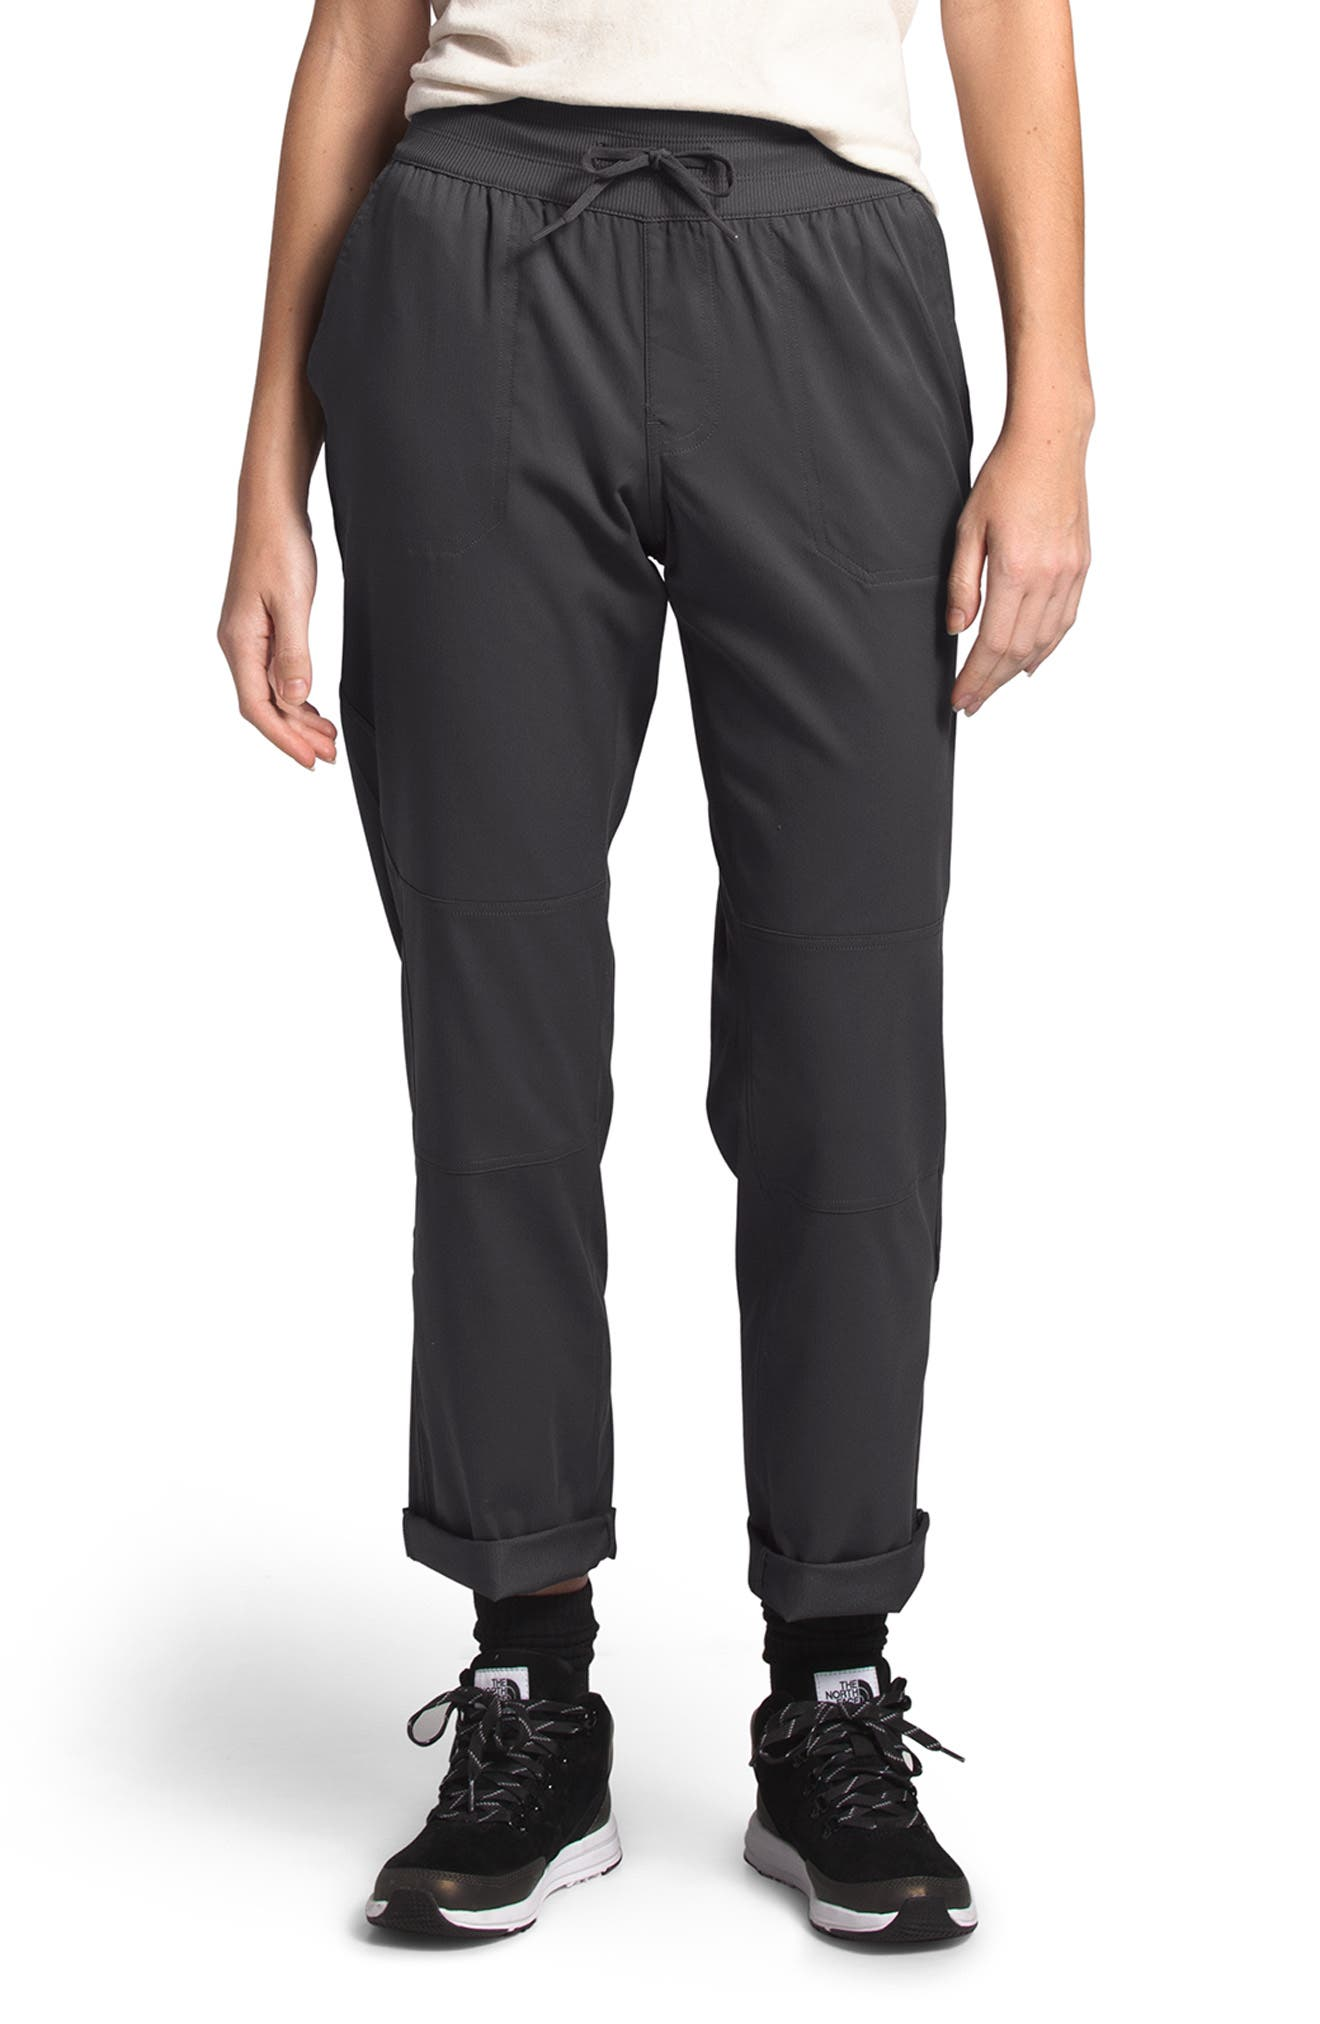 Image of The North Face Aphrodite Motion HIking Pants